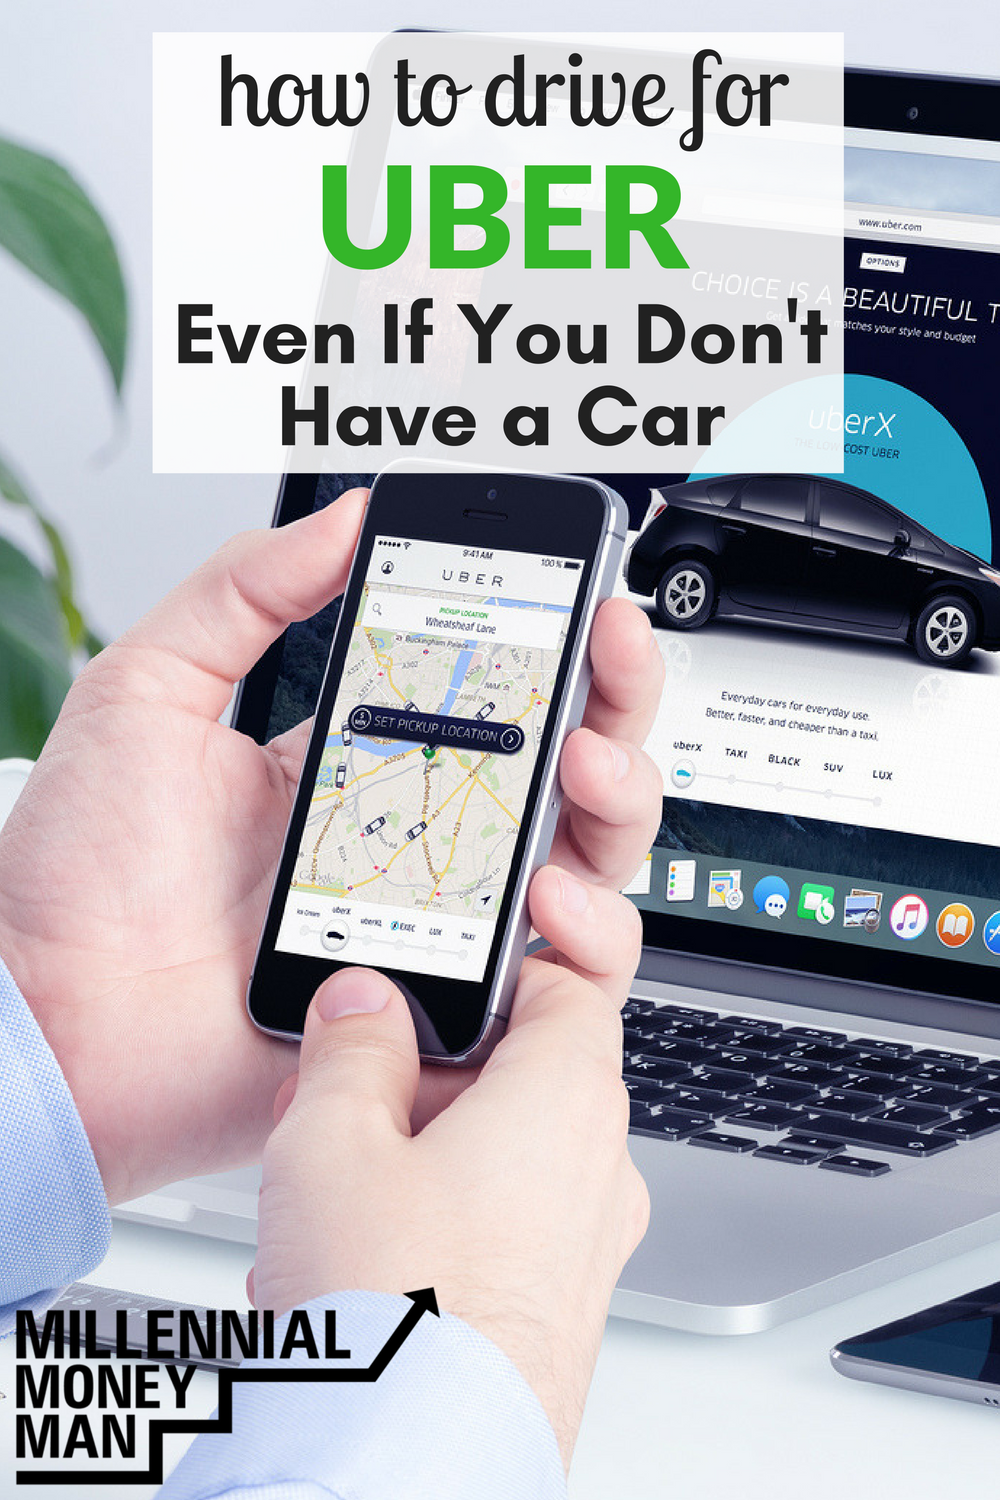 How To Drive For Uber Even If You Don't Own A Car